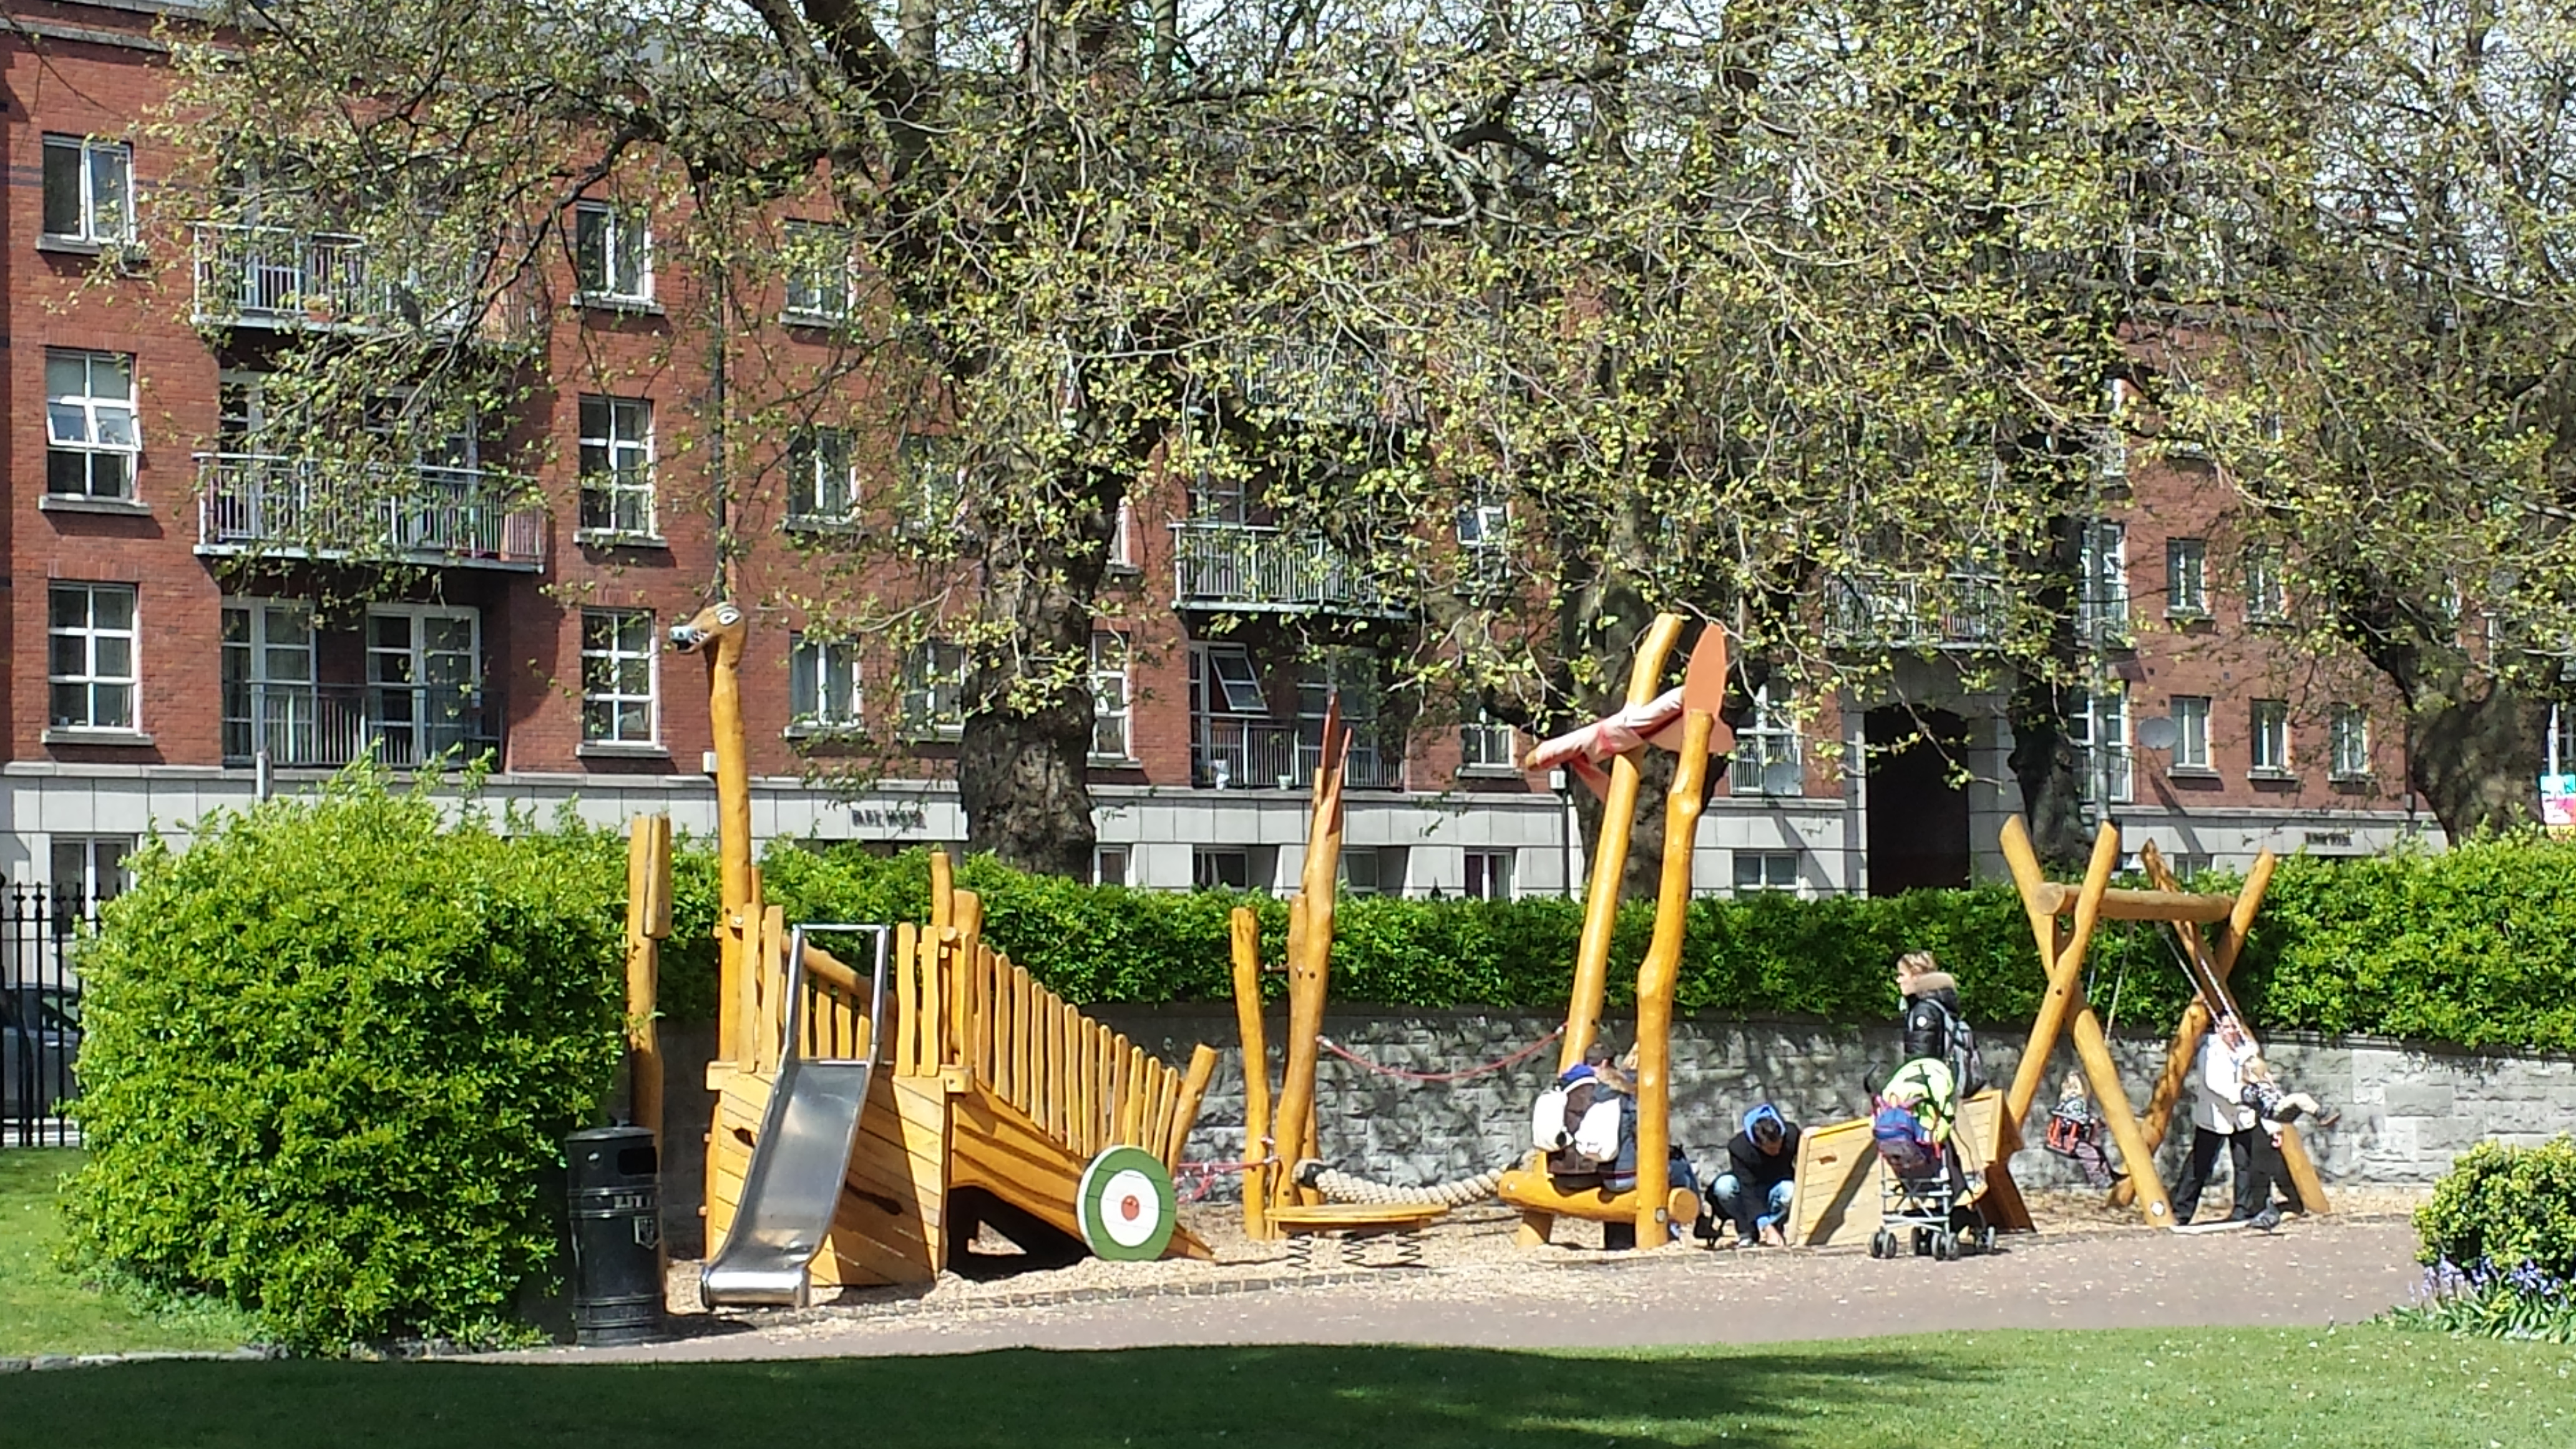 Playground for St. Patrick's Park in Dublin, located within the garden next to the cathedral